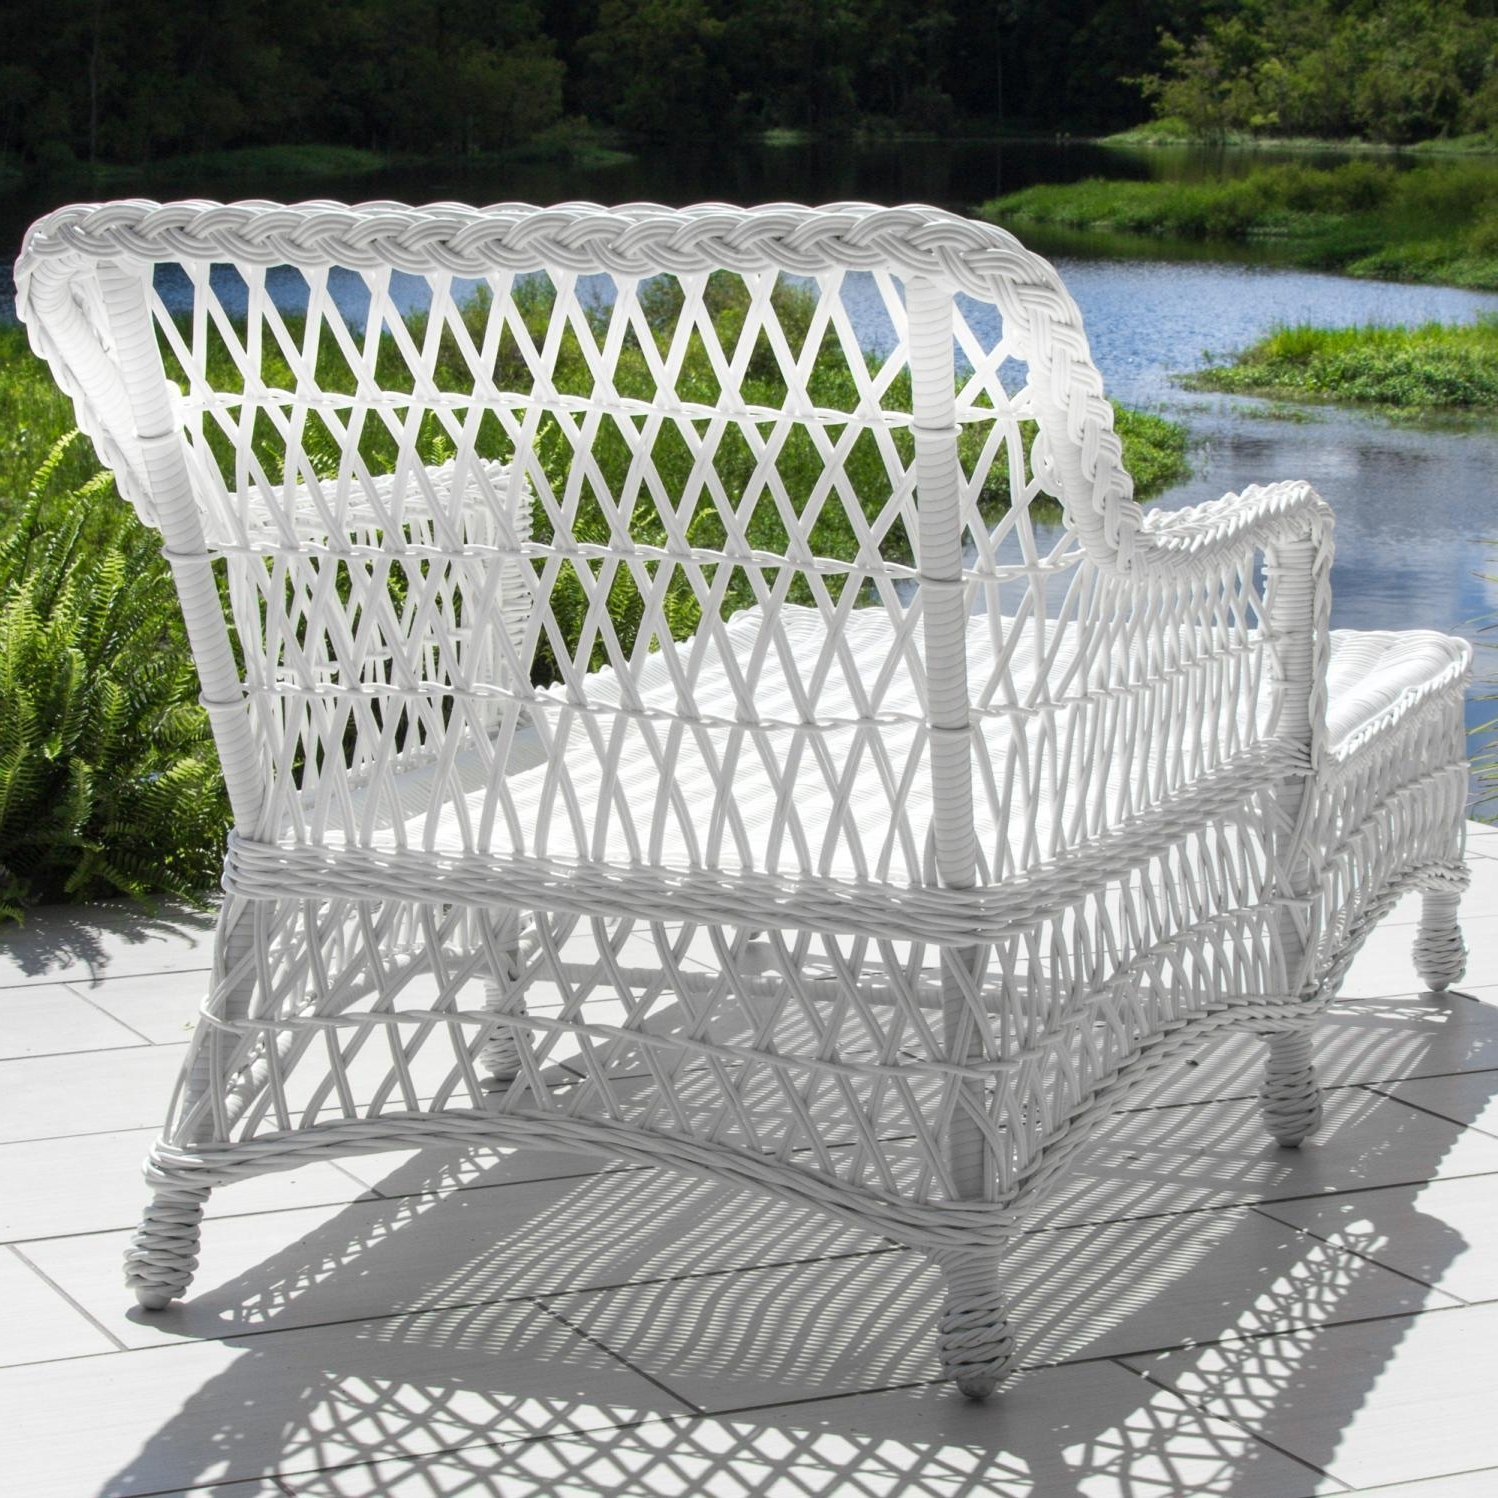 Everglades White Resin Wicker Patio Chaise Loungelakeview For Most Up To Date White Wicker Chaise Lounges (View 6 of 15)